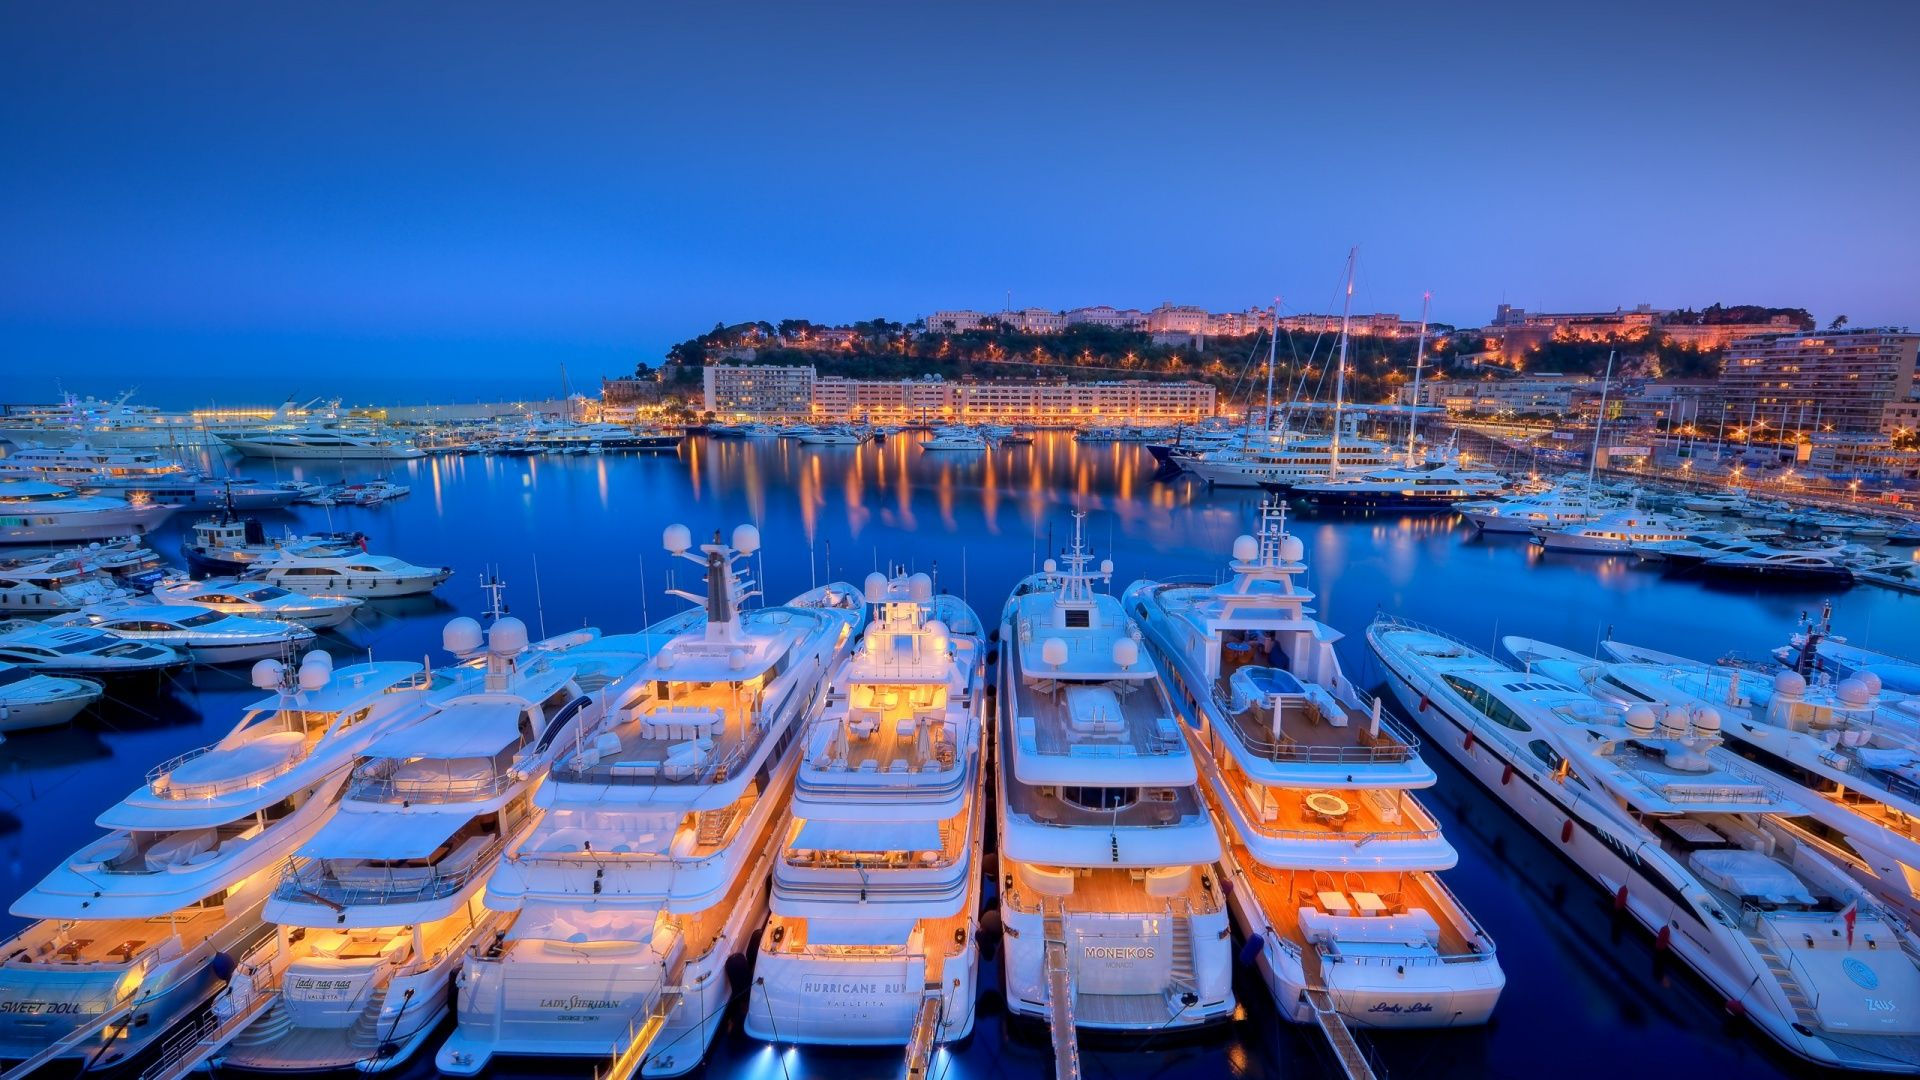 Living life in luxury with www.jwilenterprise.com Boats Yachts Harbor